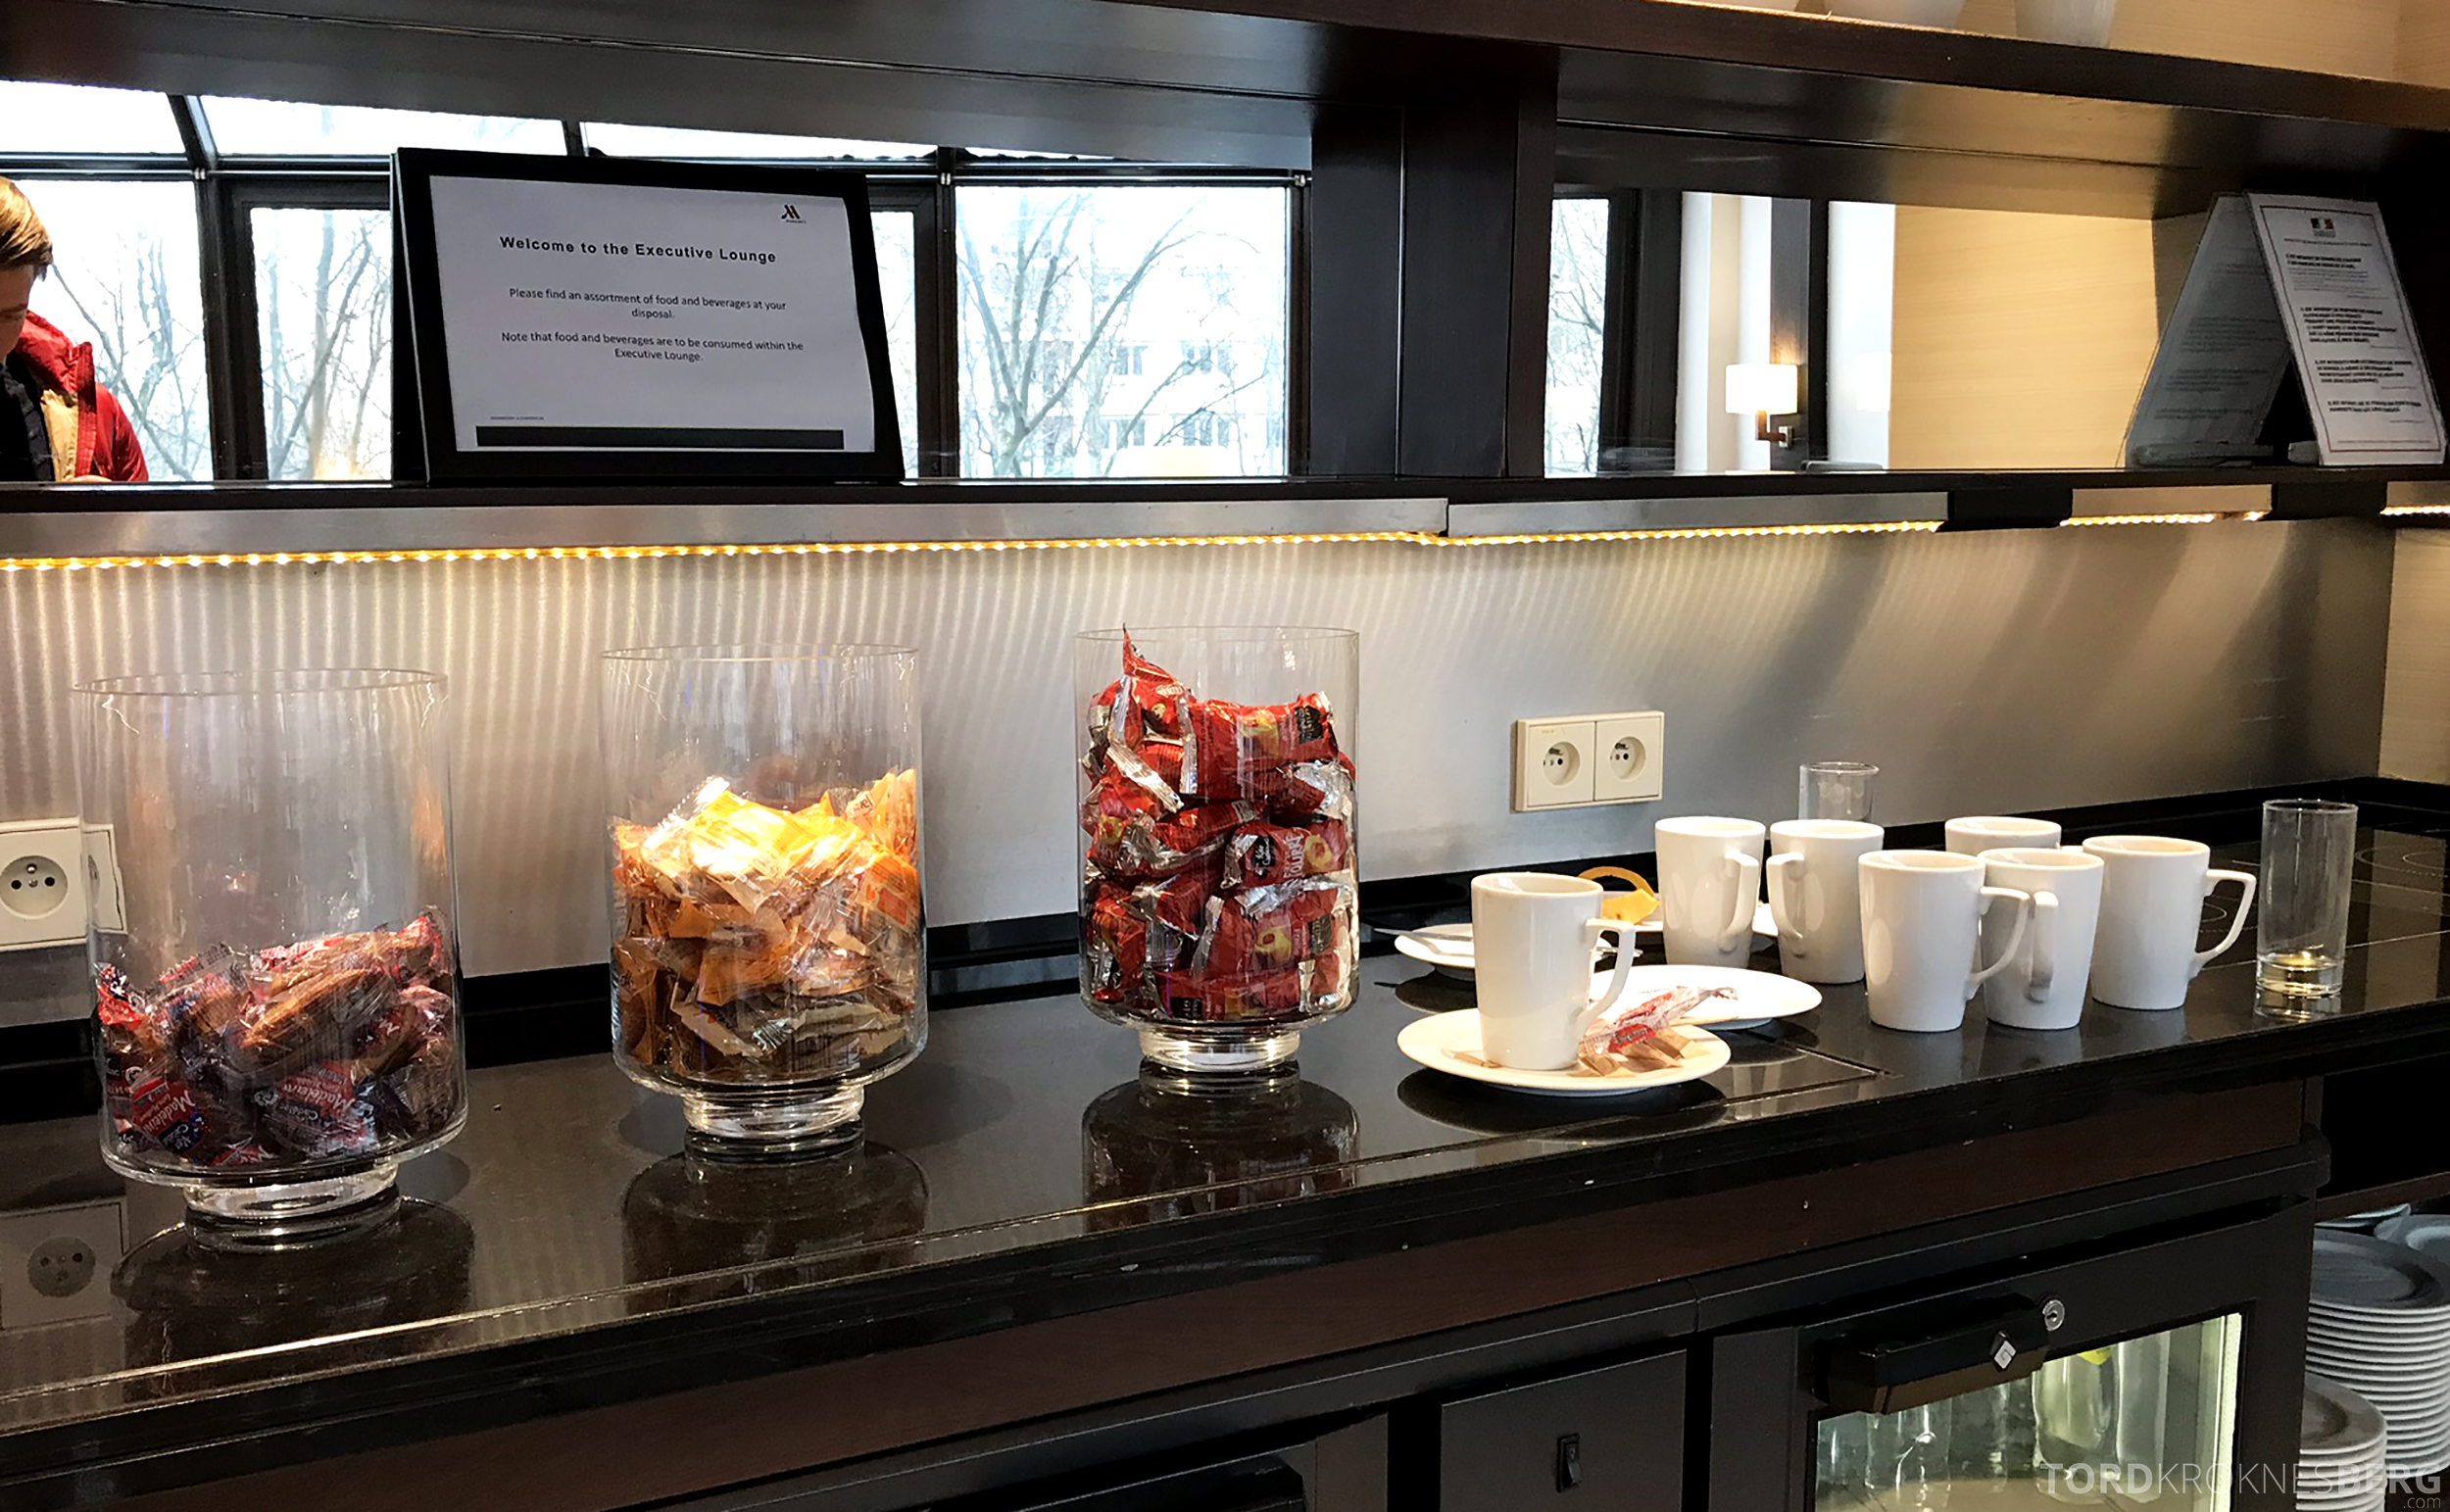 Marriott Paris Rive Gauche Executive Lounge snacks